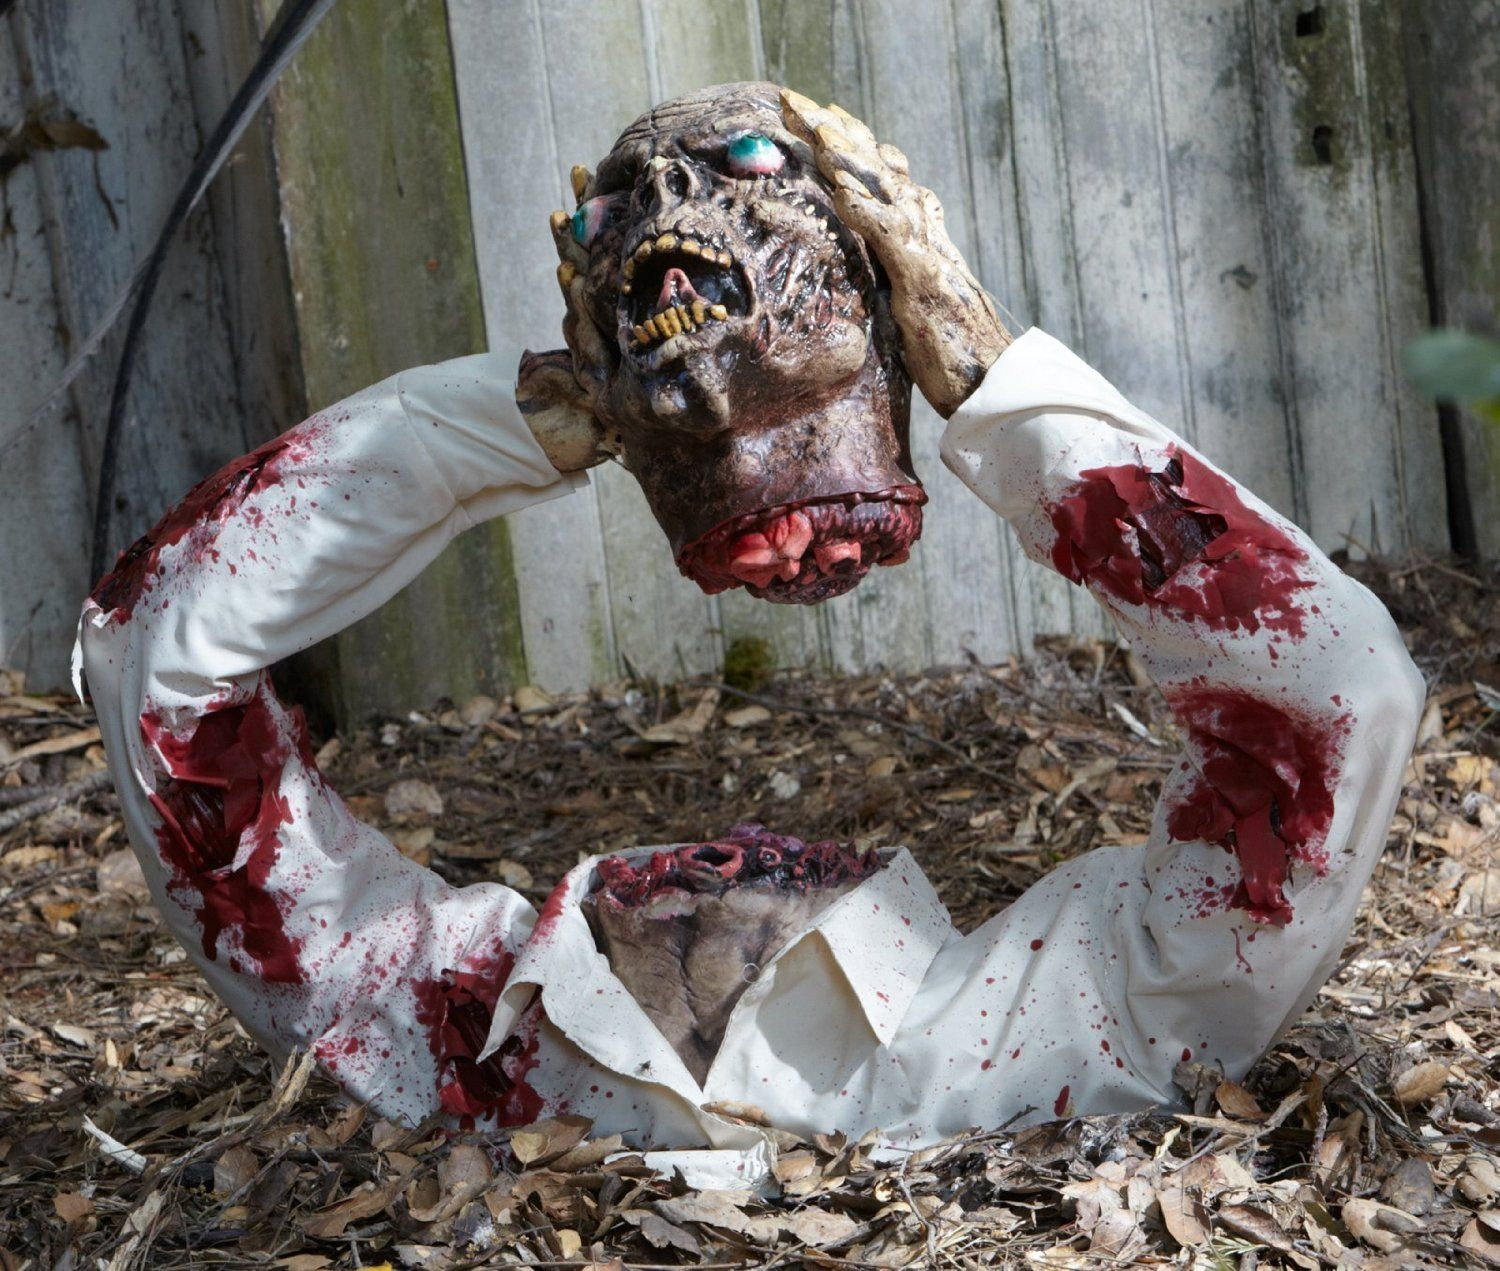 Ideas, Most Horrifying Halloween Zombie Decorations With White Shirt And  Blood Stains Also Head Off